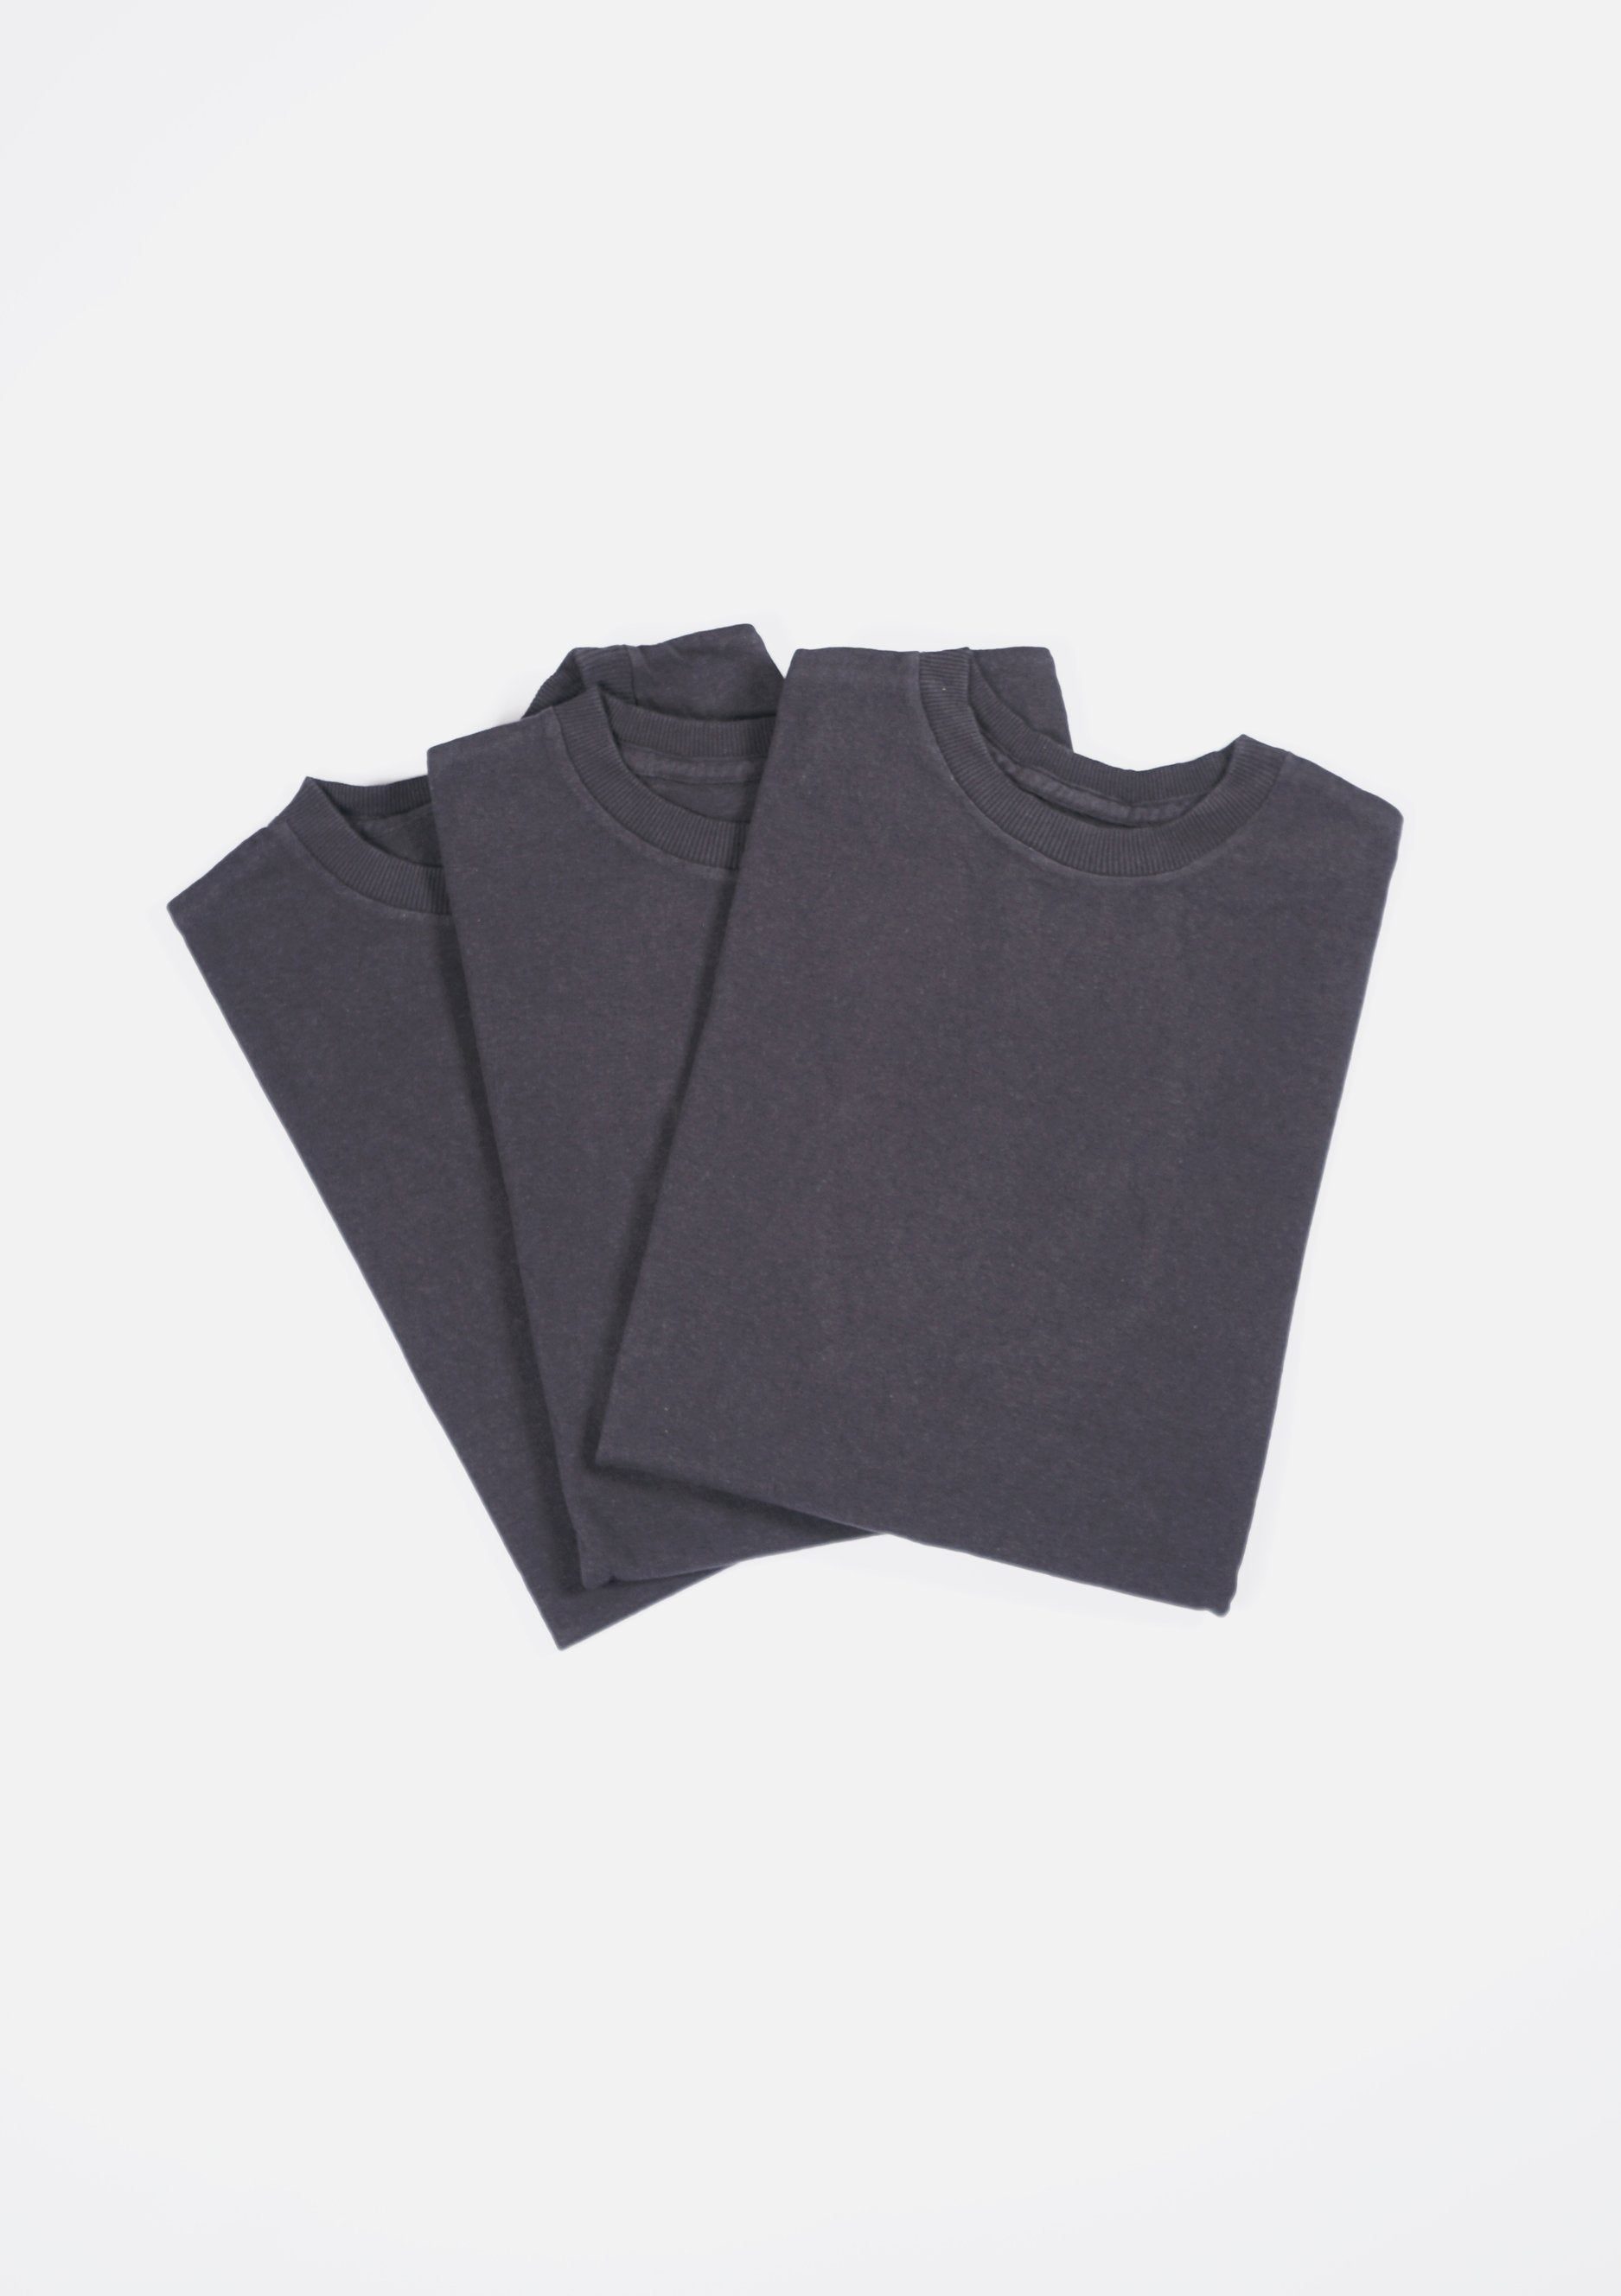 3-Pack Original Classic T-shirts Black